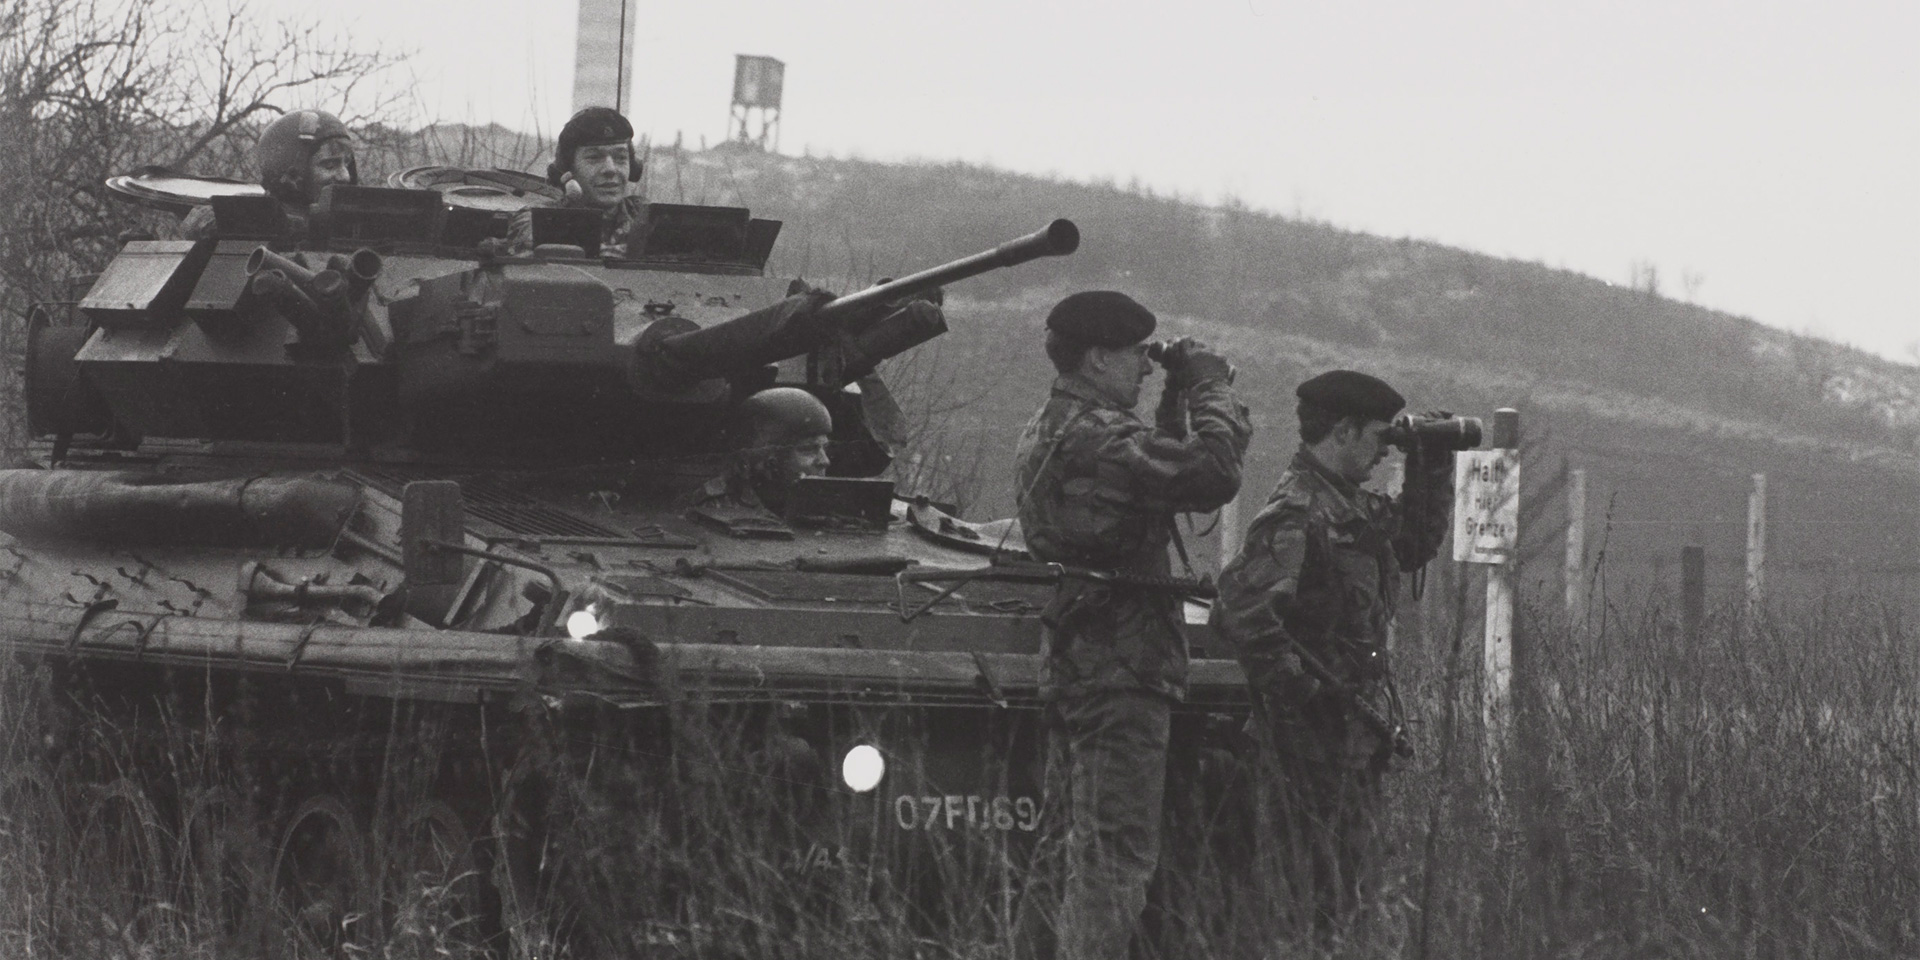 A training patrol of the 16th/5th The Queen's Royal Lancers visits the Inner German Border, 1979